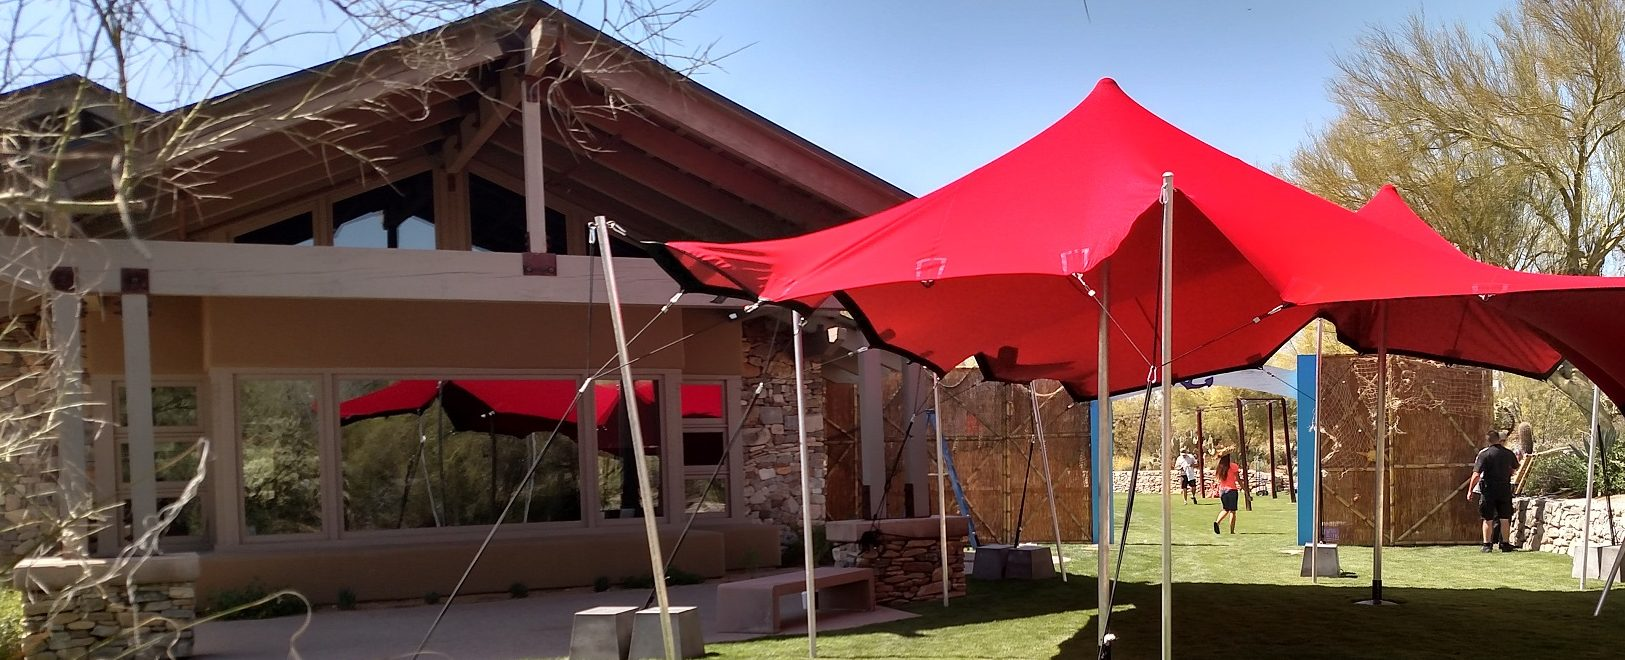 Scottsdale Stretch Tents At DC Ranch & Easter event tent rental for DC Ranch in Scottsdale | Scottsdale ...